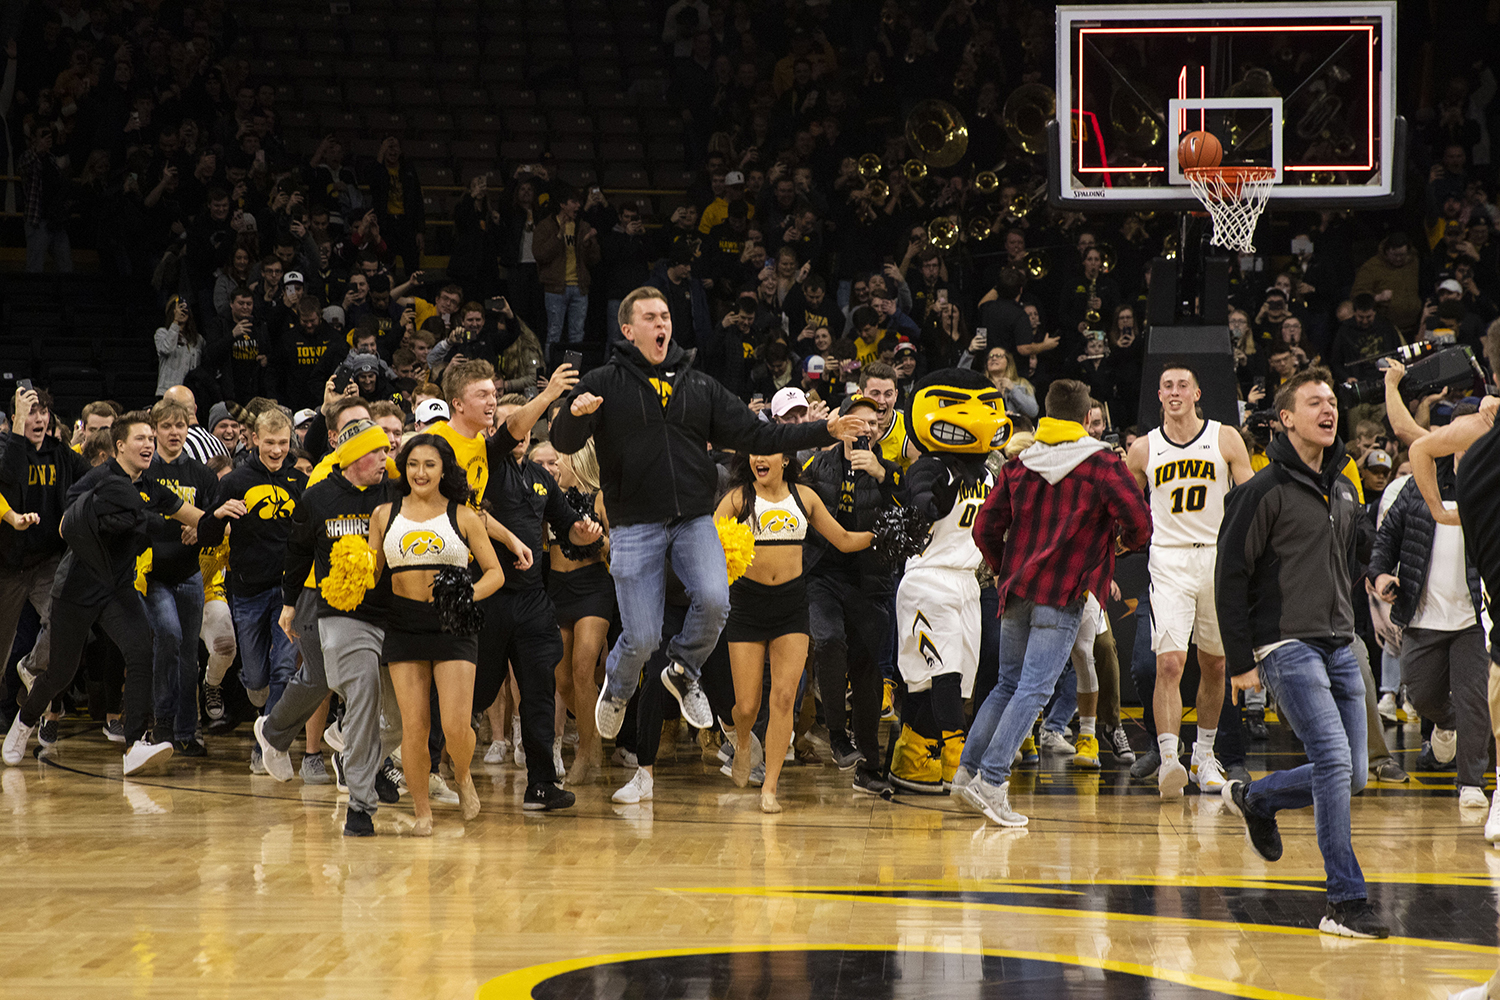 Fans+storm+the+court+and+celebrate+with+the+team+during+the+Iowa%2FMichigan+men%27s+basketball+game+at+Carver-Hawkeye+Arena+on+Friday%2C+February+1%2C+2019.+The+Hawkeyes+took+down+the+No.+5+ranked+Wolverines%2C+74-59.